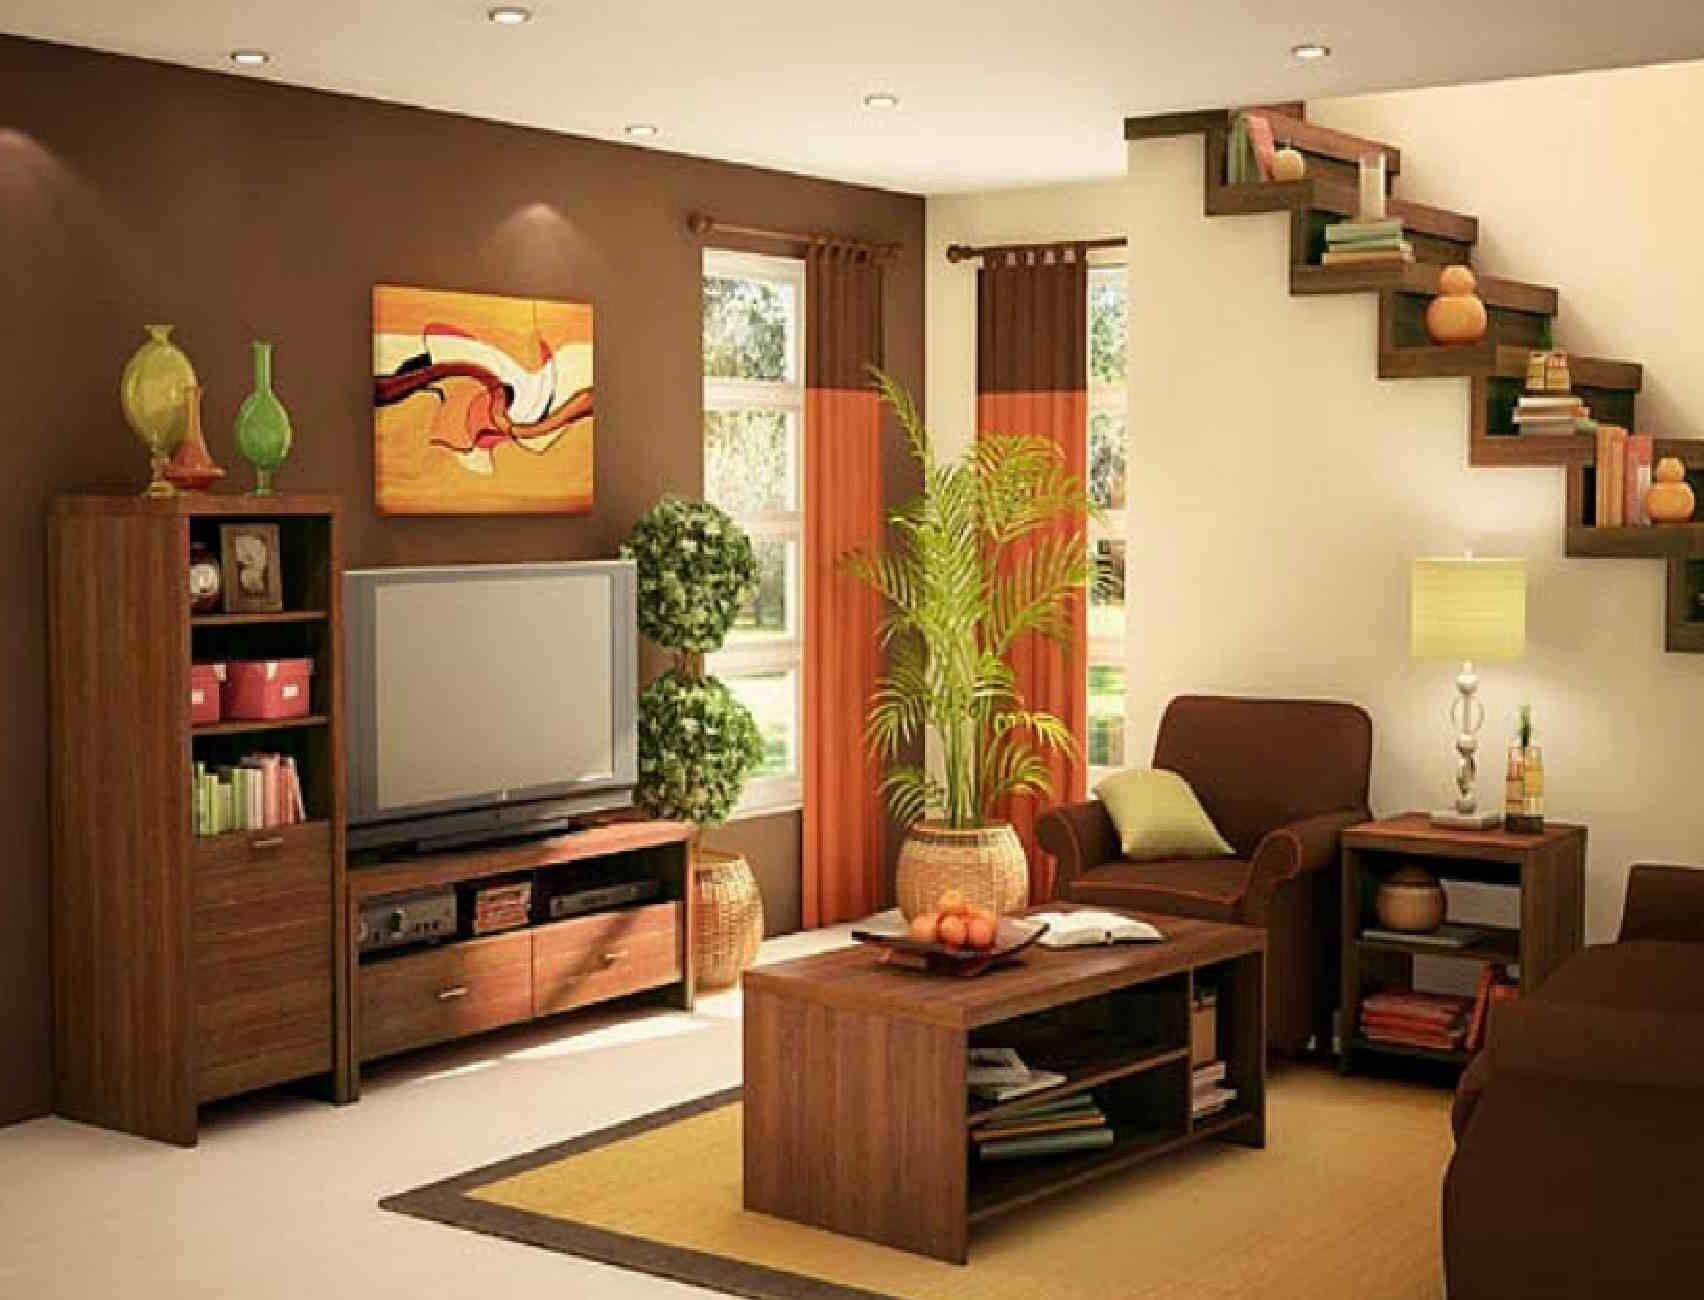 Attractive Interior Designs For Small Houses In the Philippines ...